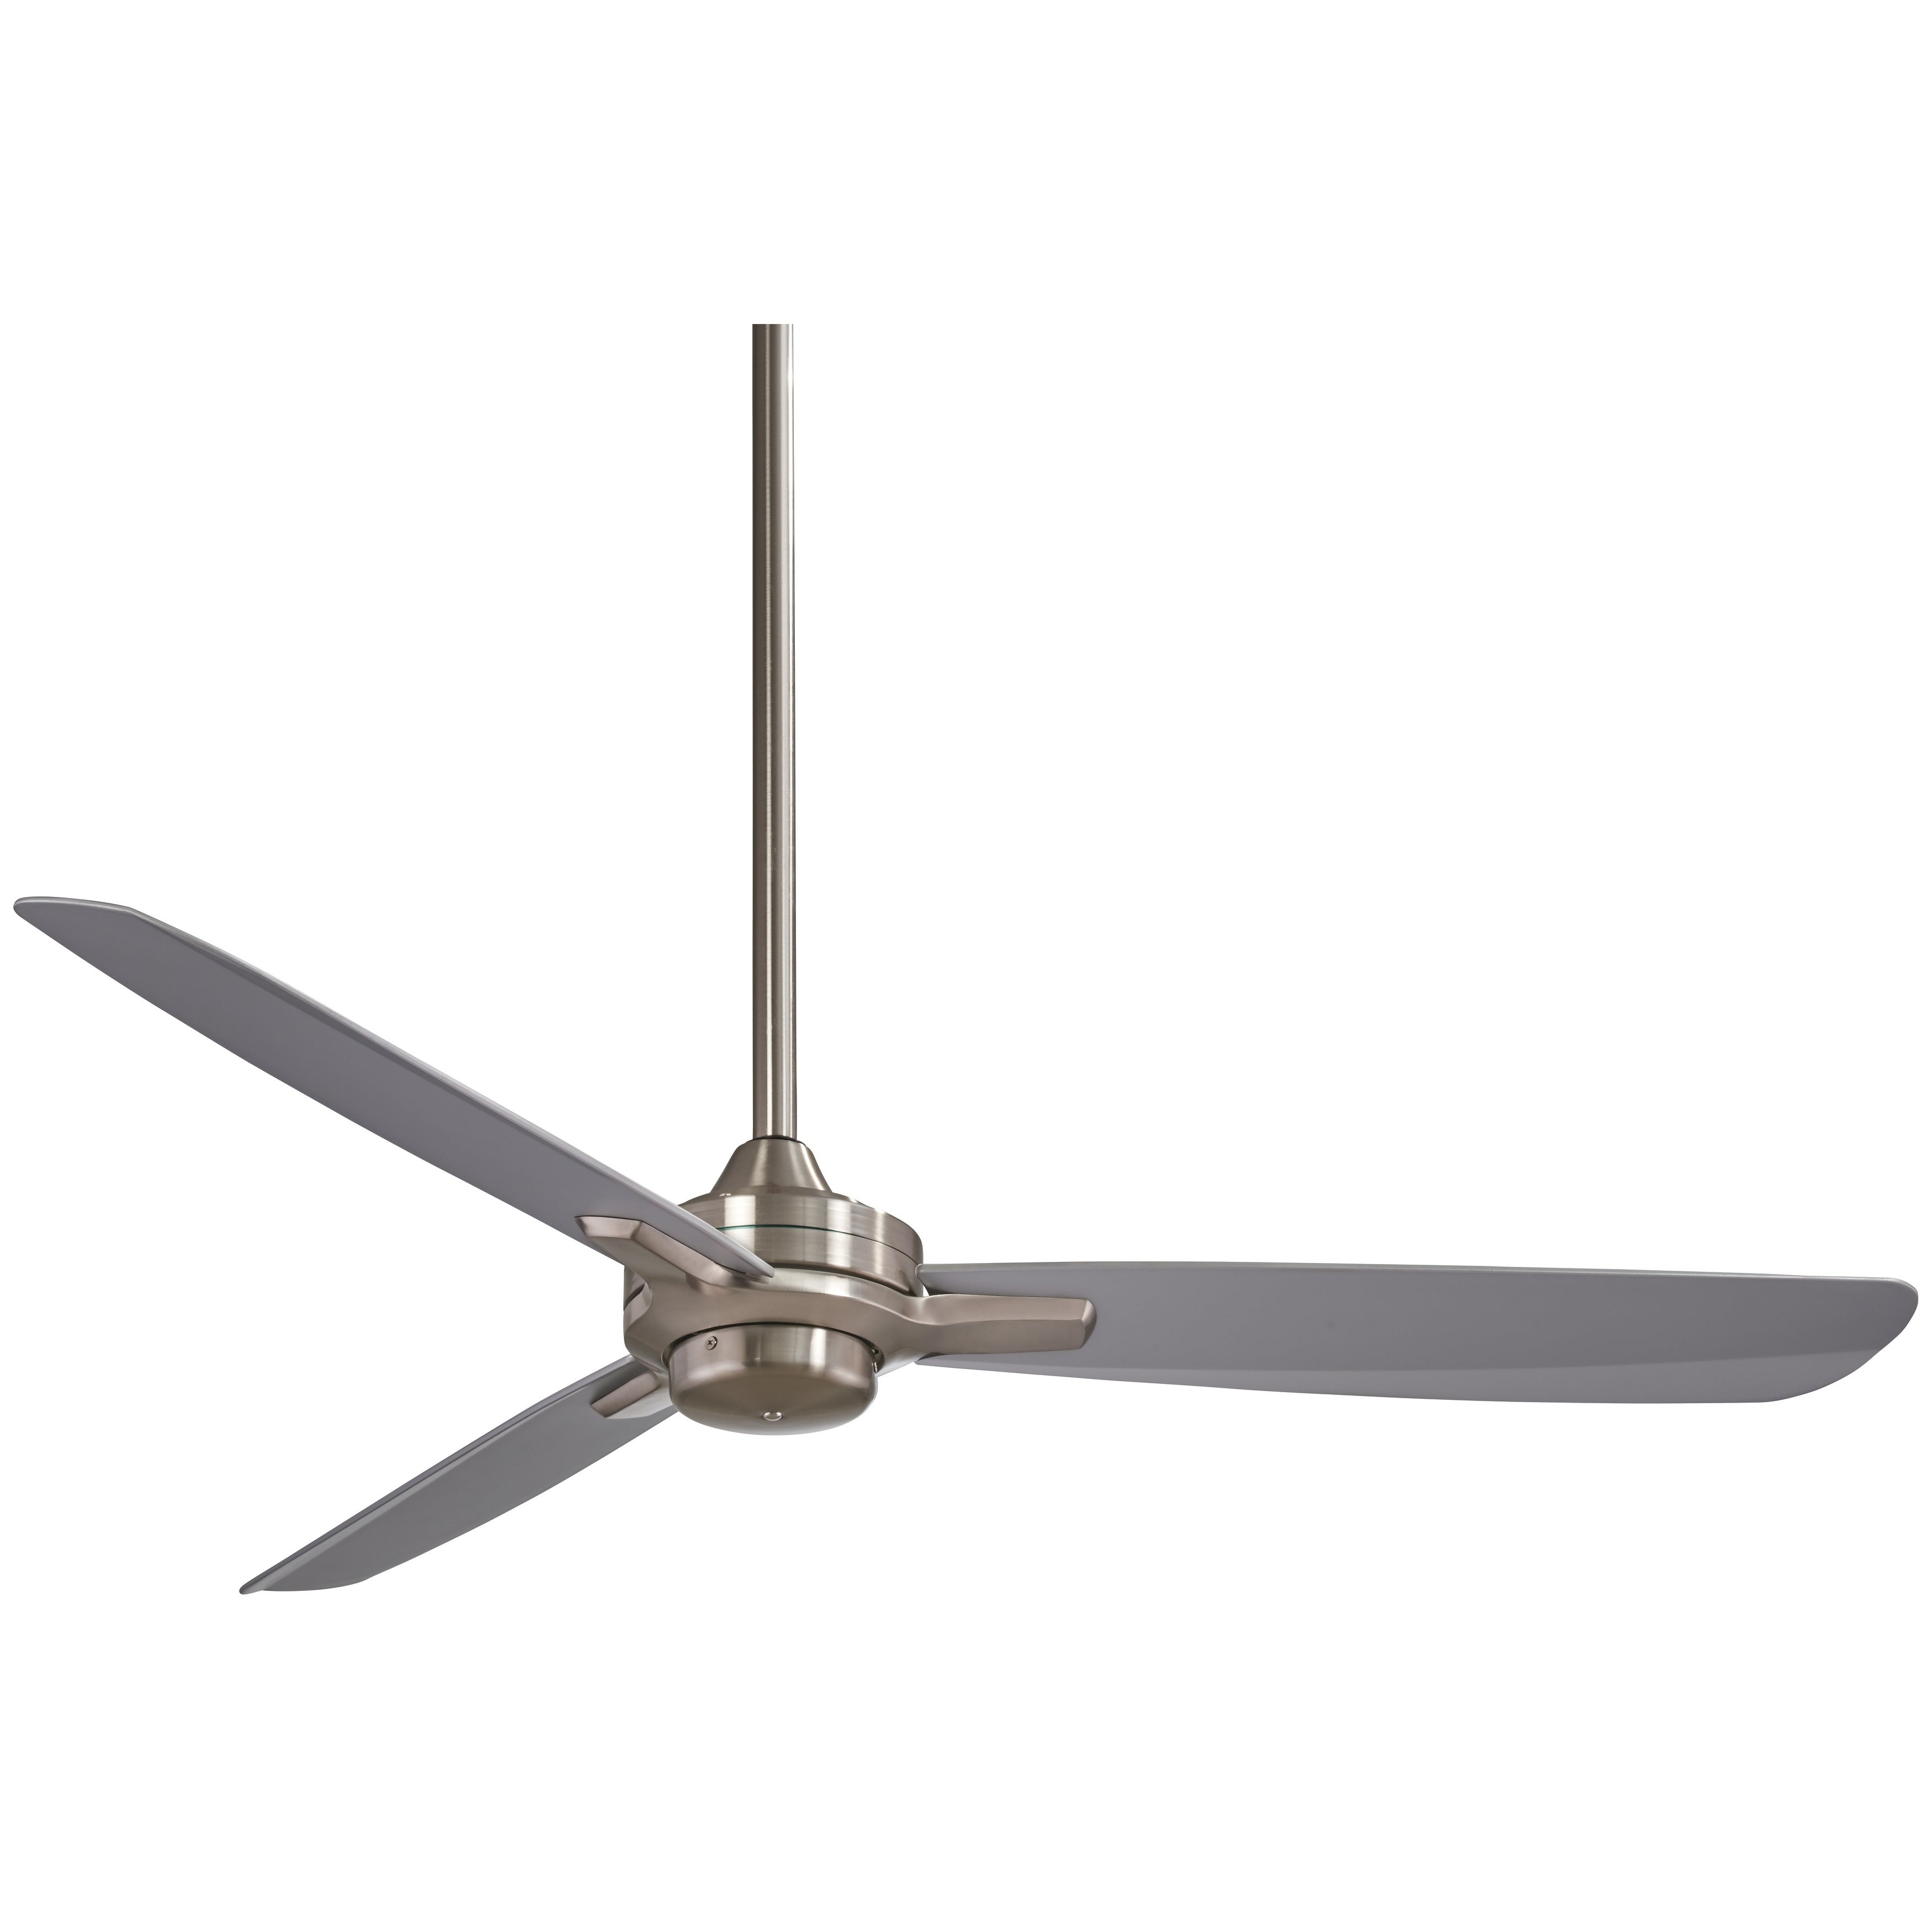 Rudolph Ceiling Fan In Brushed Nickel W Silver Finish Blades